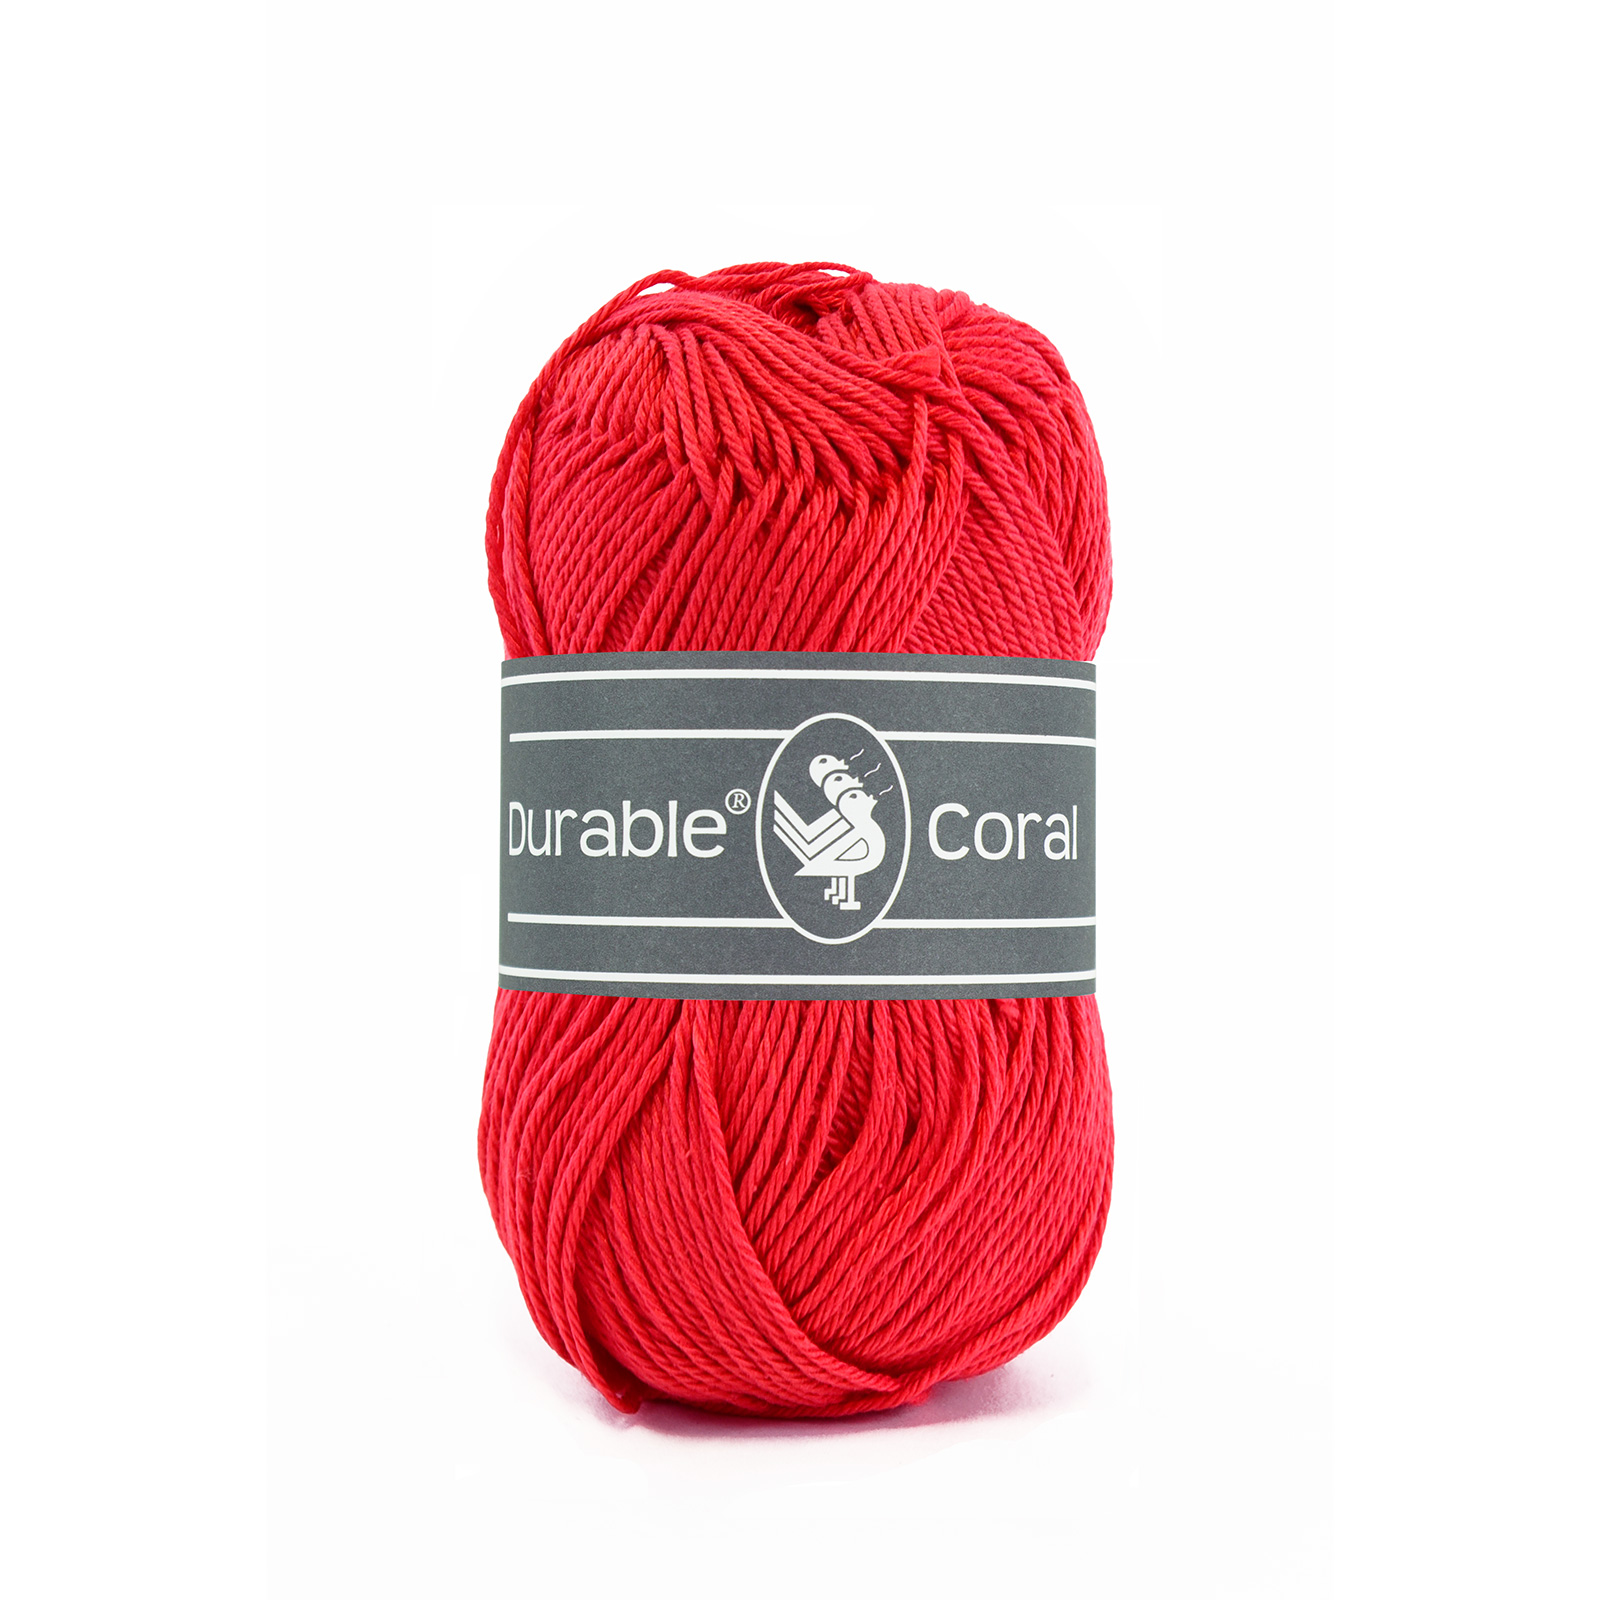 Durable Coral Rood-316